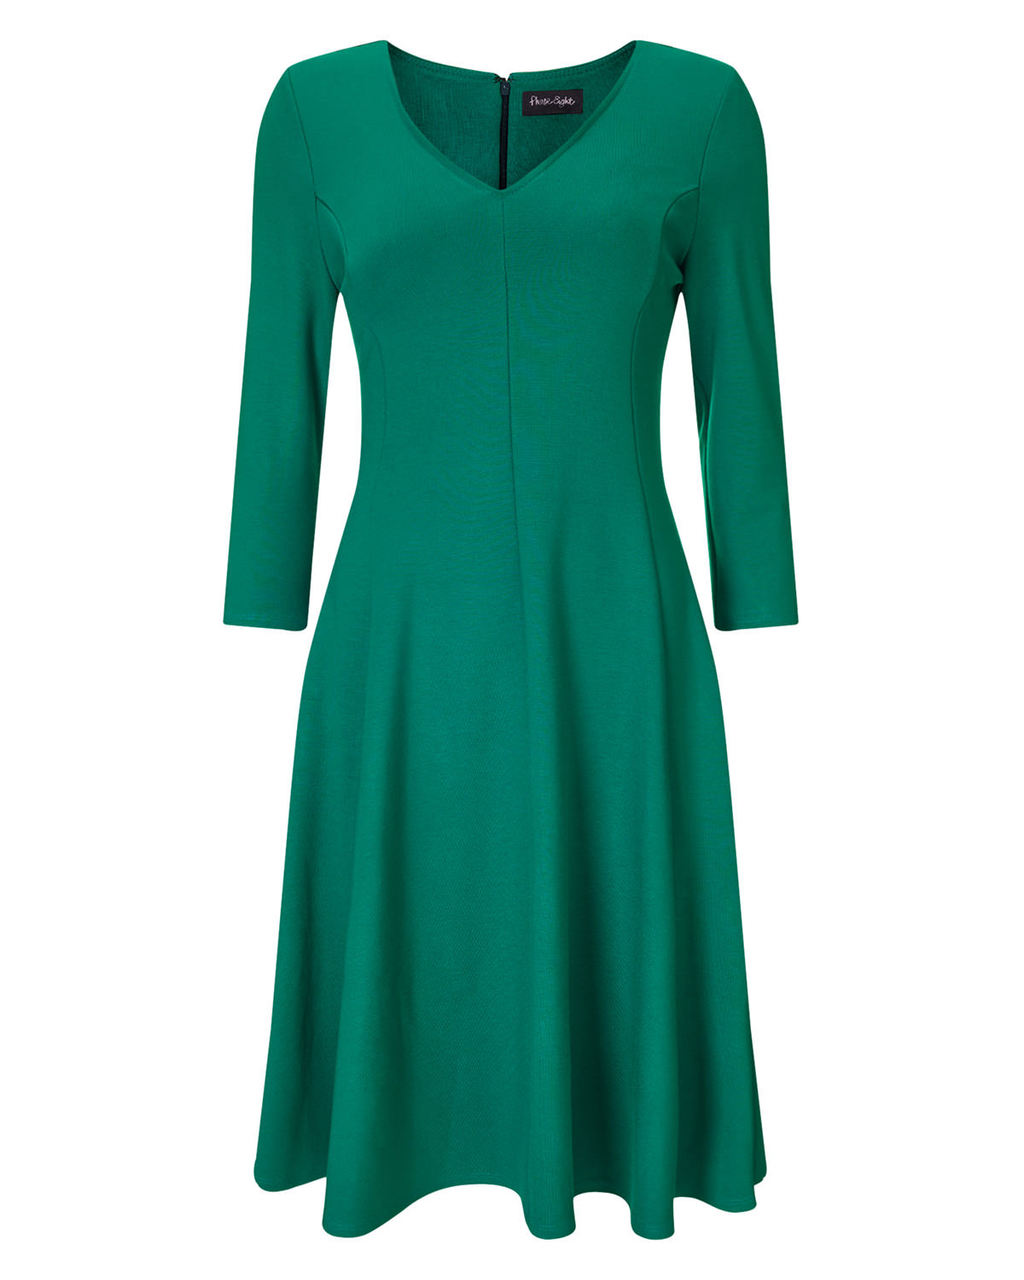 Sienna Skater Dress - neckline: v-neck; pattern: plain; predominant colour: emerald green; occasions: evening; length: on the knee; fit: fitted at waist & bust; style: fit & flare; fibres: viscose/rayon - stretch; sleeve length: 3/4 length; sleeve style: standard; pattern type: fabric; texture group: jersey - stretchy/drapey; season: a/w 2015; wardrobe: event